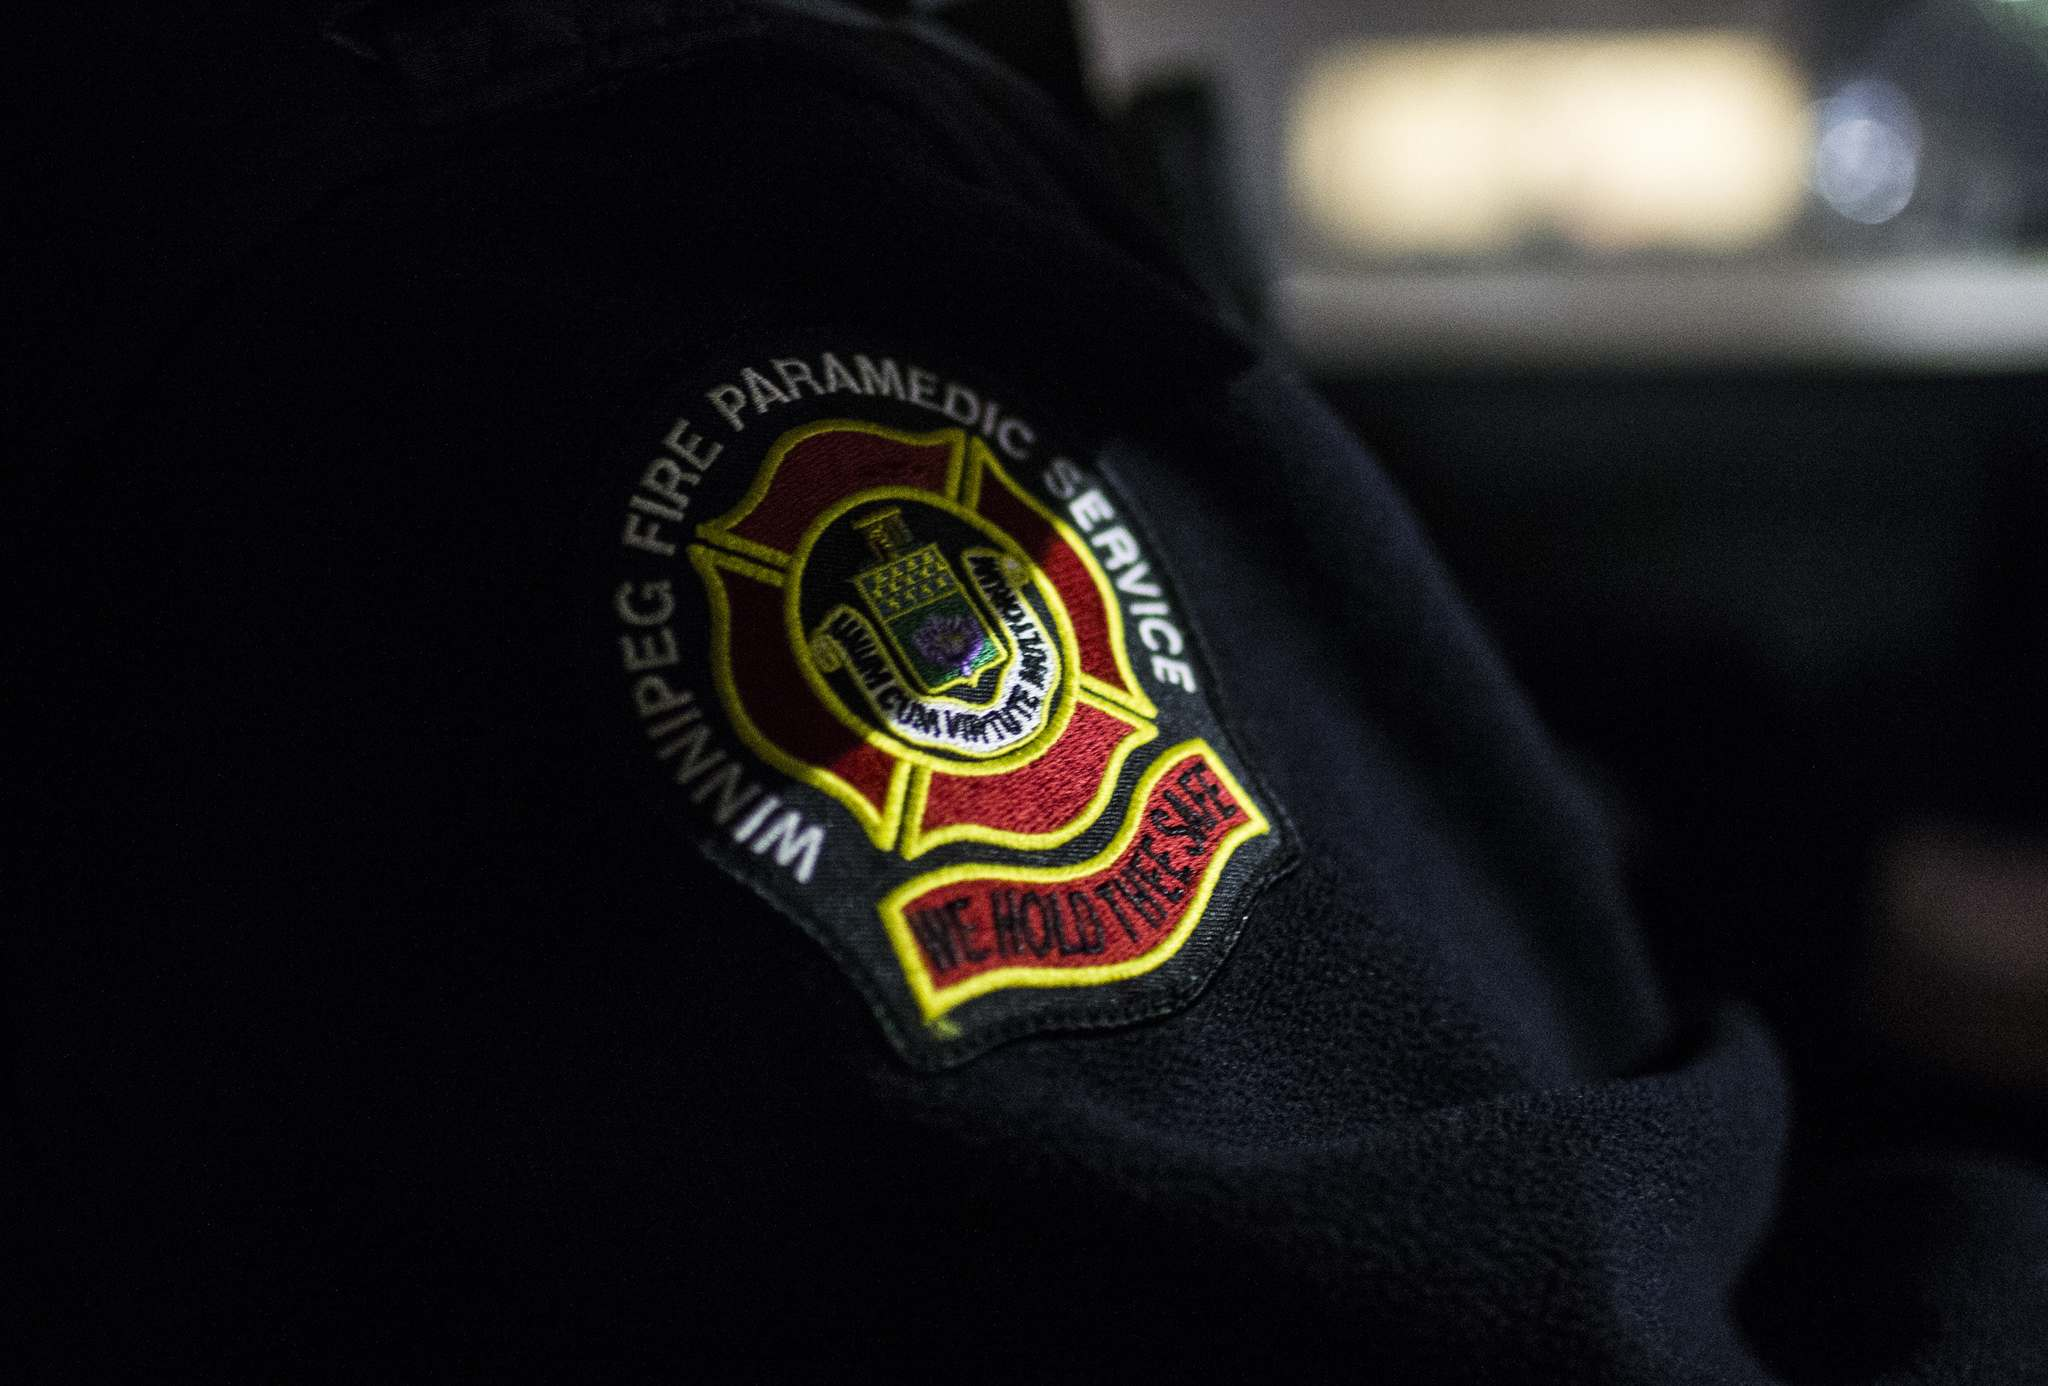 The Winnipeg Fire Paramedic Service is asking its employees to disclose their vaccination status, according to an internal department memo leaked to the <em>Free Press</em>. (Mikaela MacKenzie / Winnipeg Free Press files)</p>